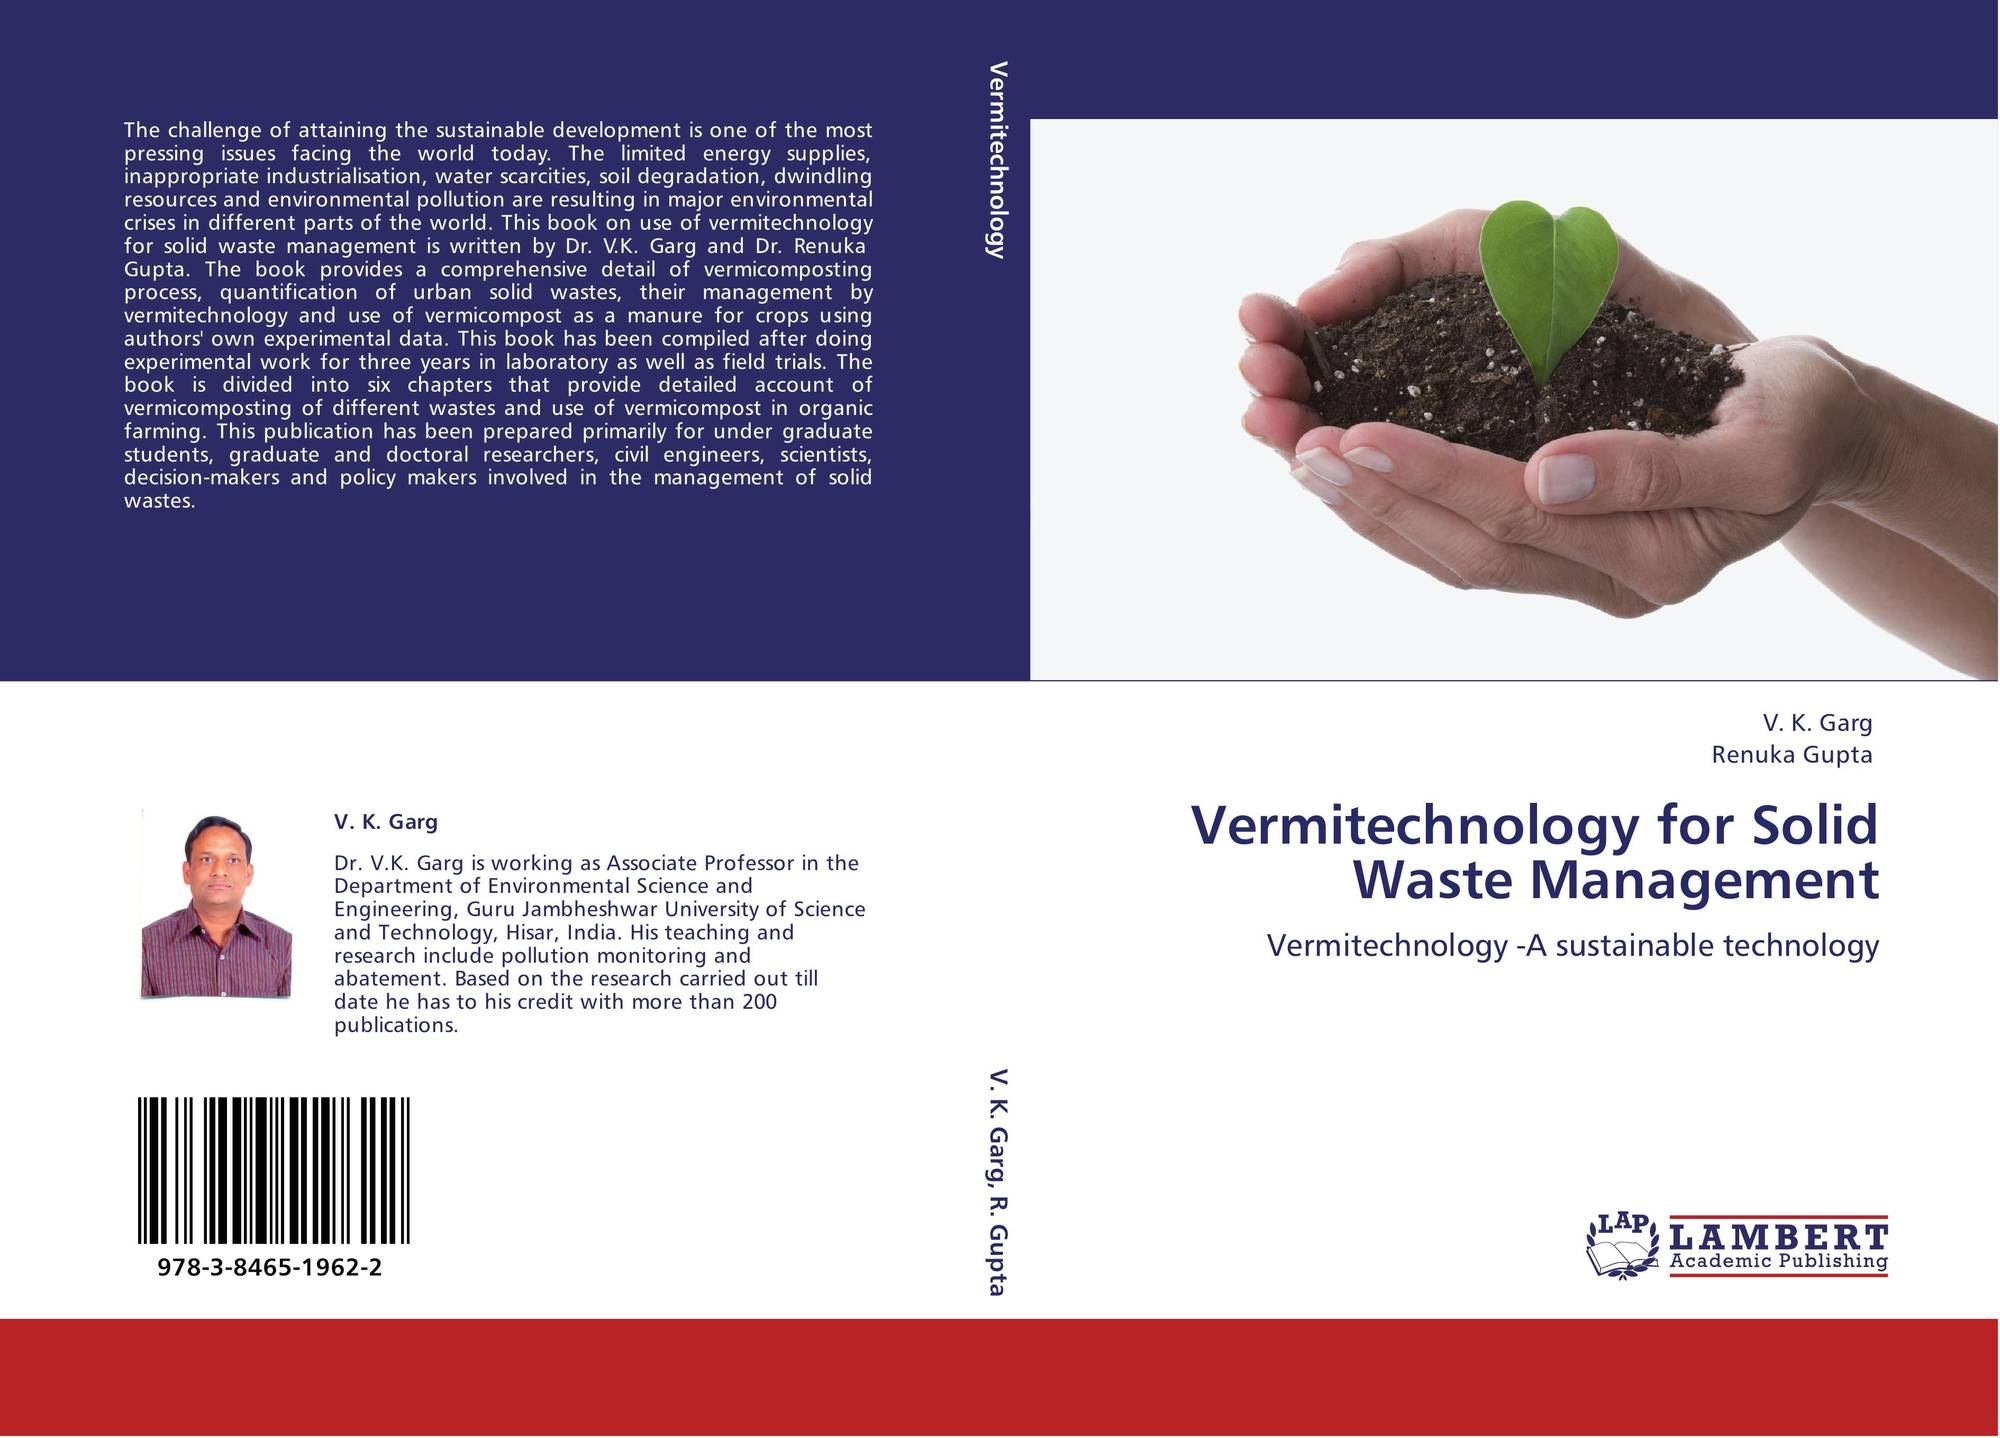 concept and description of vermiculture and vermicomposting environmental sciences essay International appeal of vermicomposting vermiculture vermicomposting is compatible with sound environmental may be useful when introducing the concept of.